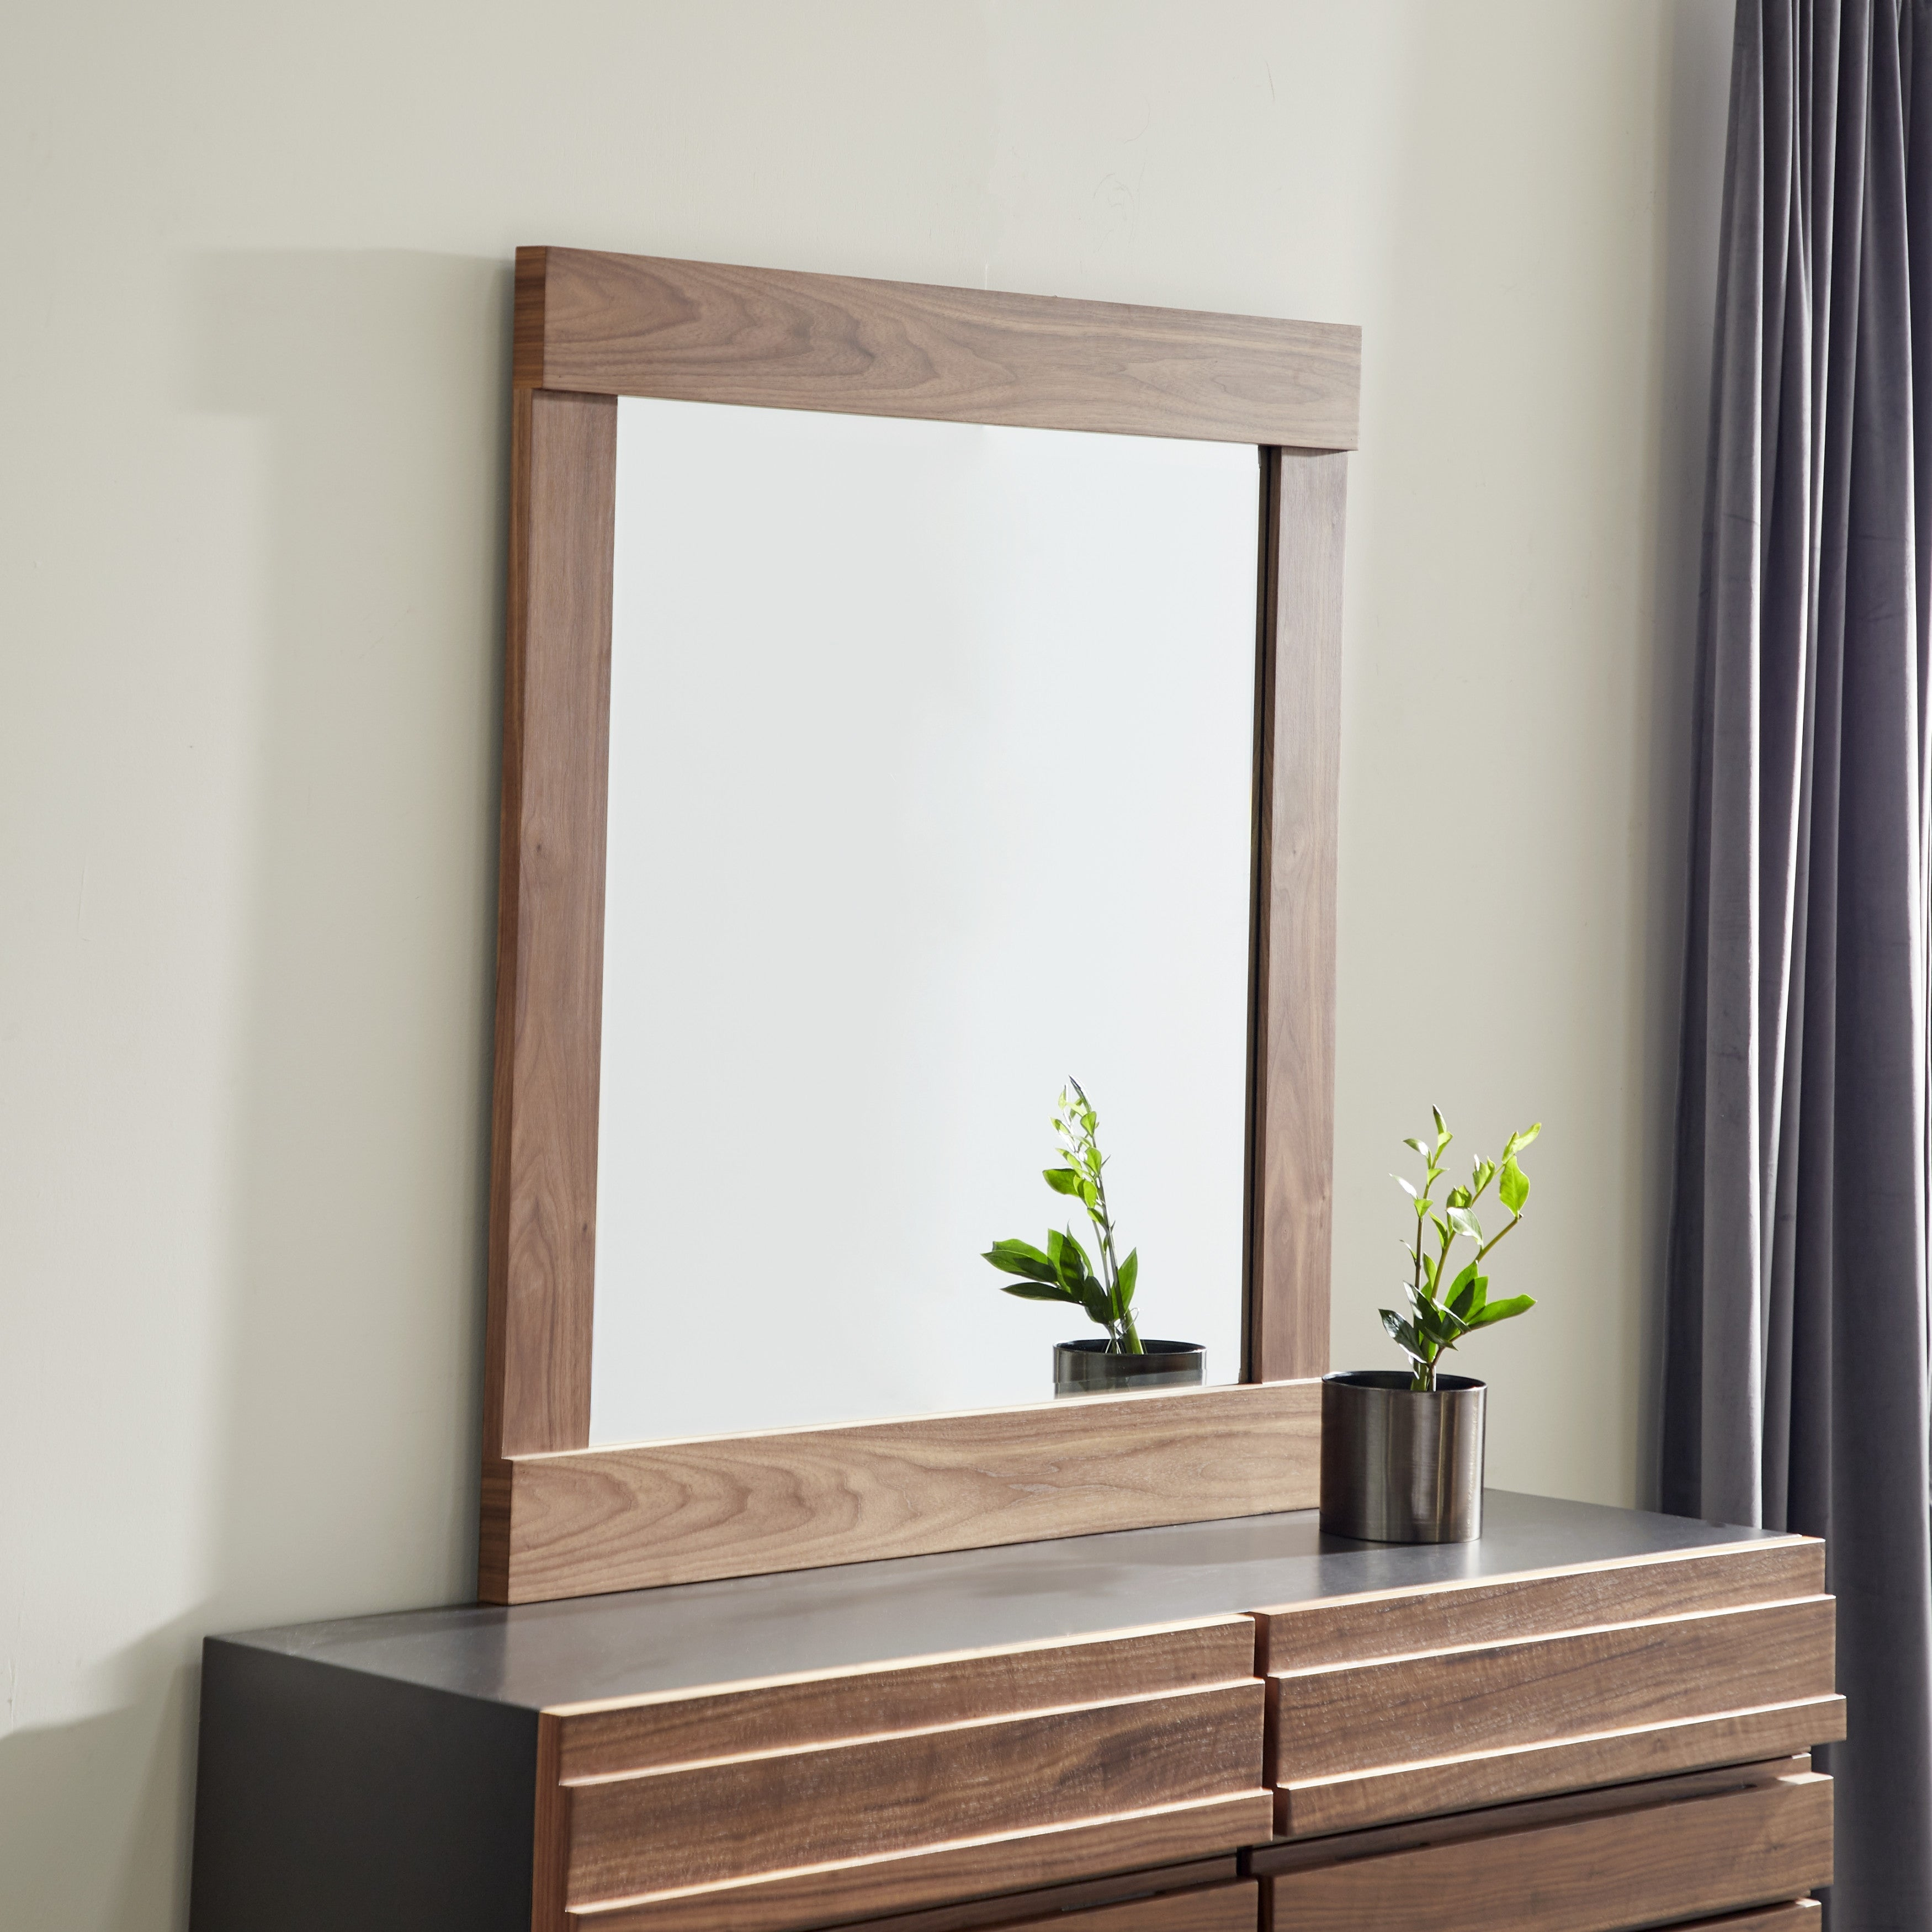 Contemporary Large Square Natural Wood Dresser Mirror 42 X 57 42 X 2 X 57 Overstock 32114481